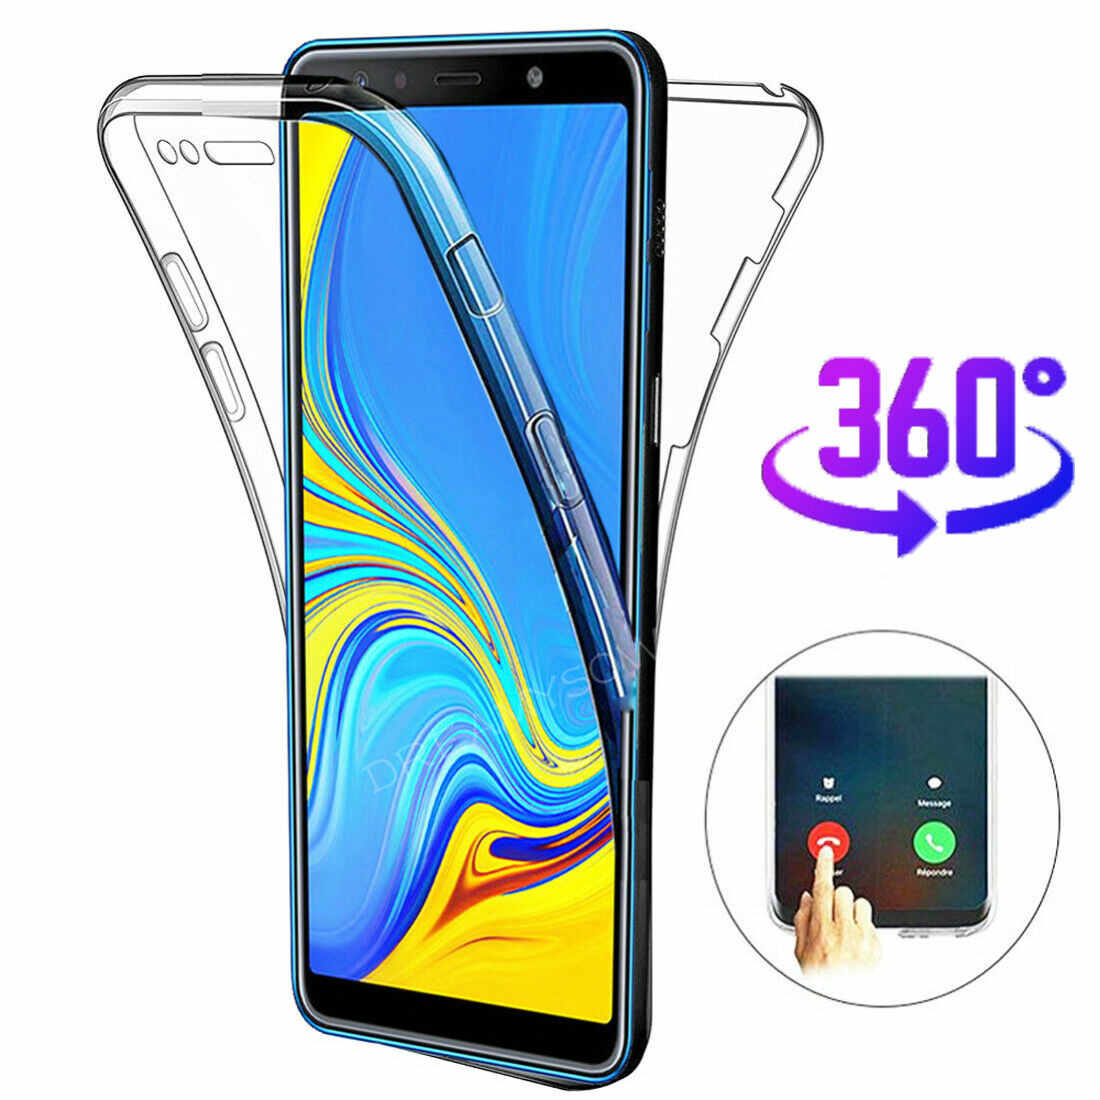 360 Full body Case For Samsung Galaxy A50 A40 A30 A10 M10 S10 E S9 S8 A6 A8 J6 J4 Plus A7 A750 2018 Soft Clear TPU Cover Coque